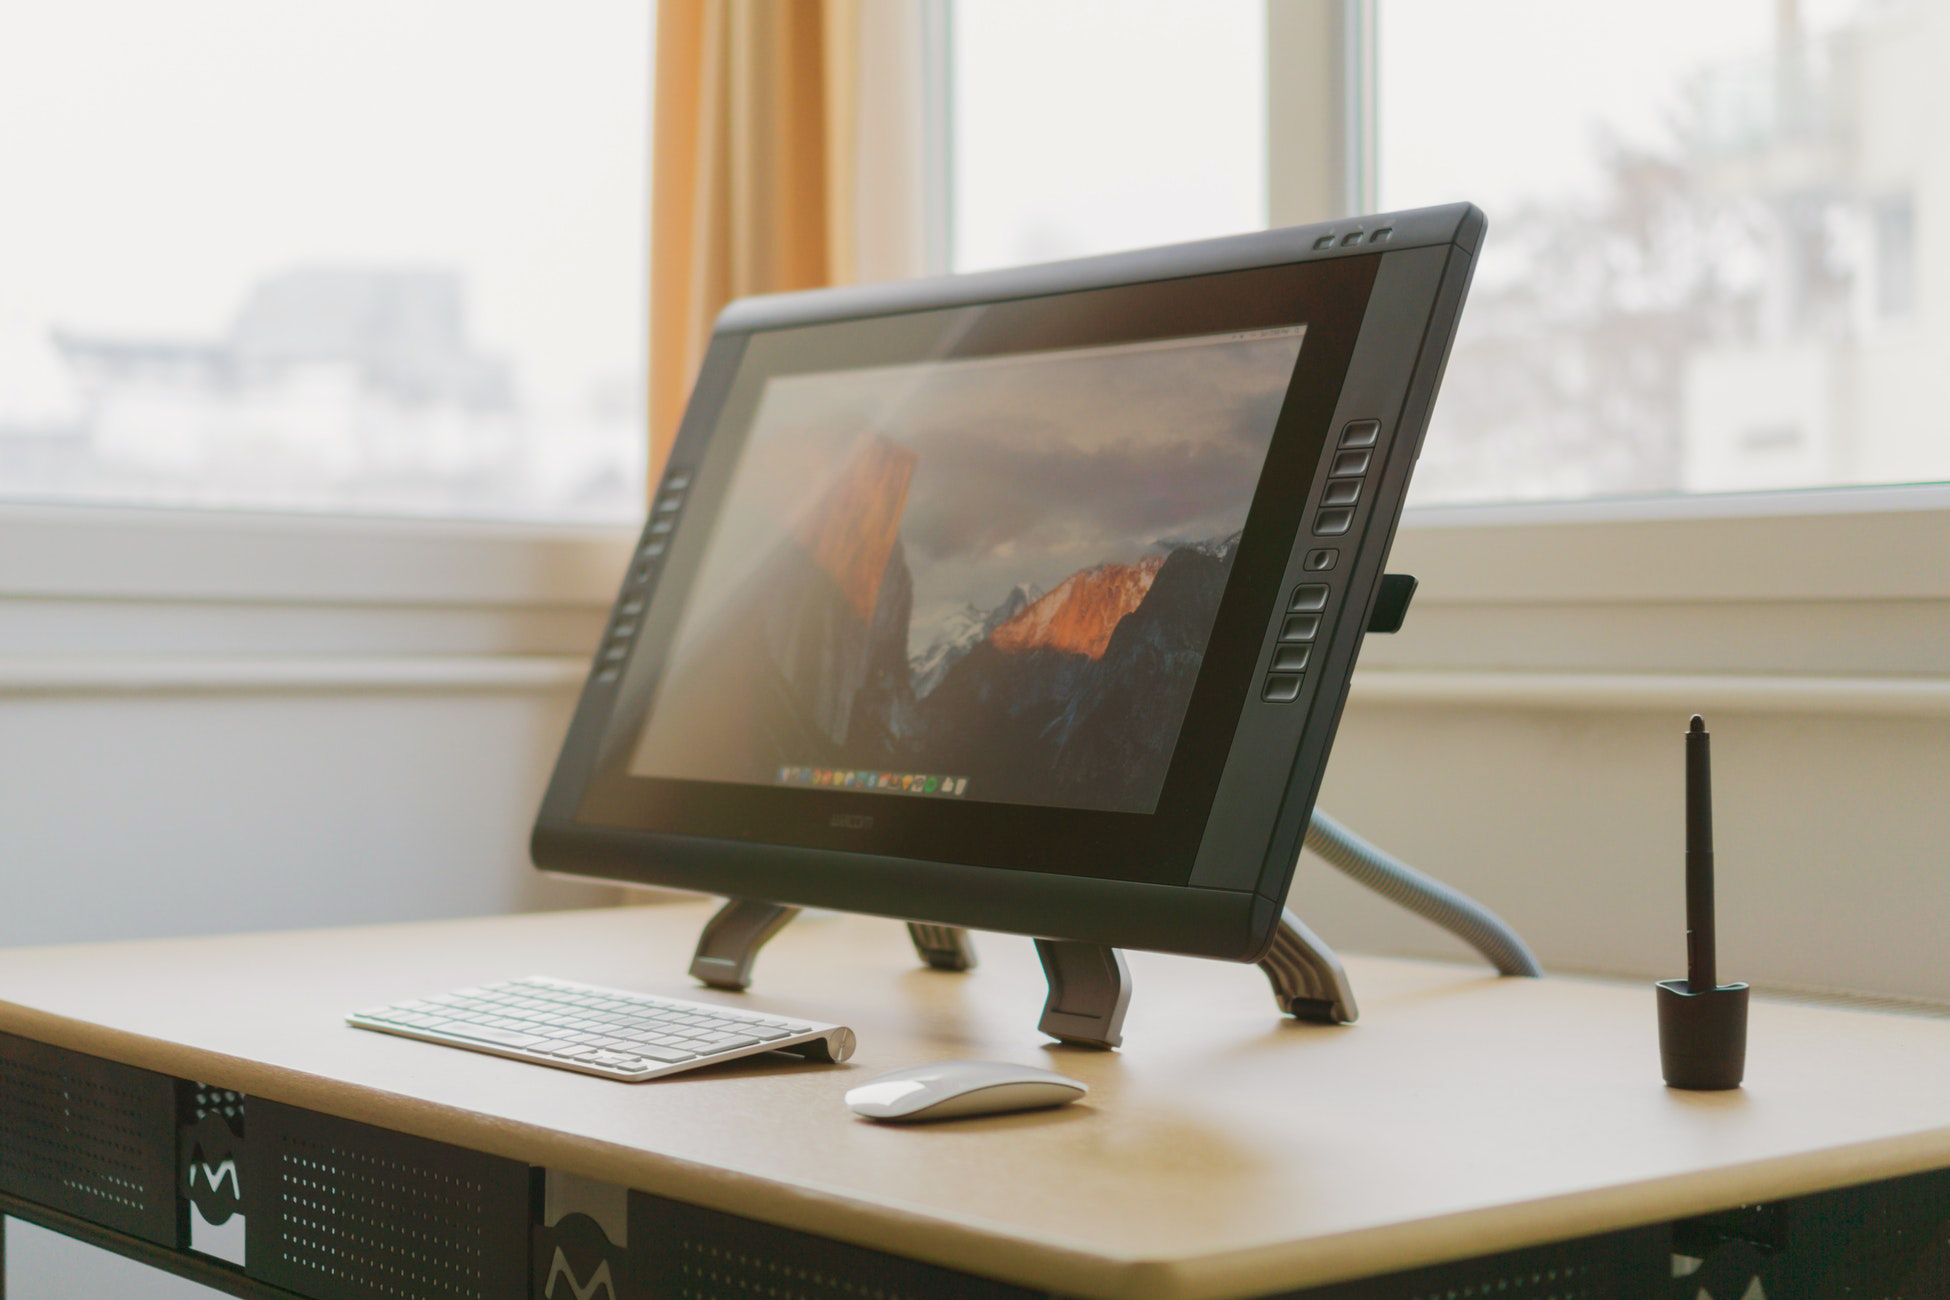 Internships for creative students: a graphic designer's tablet on a desk